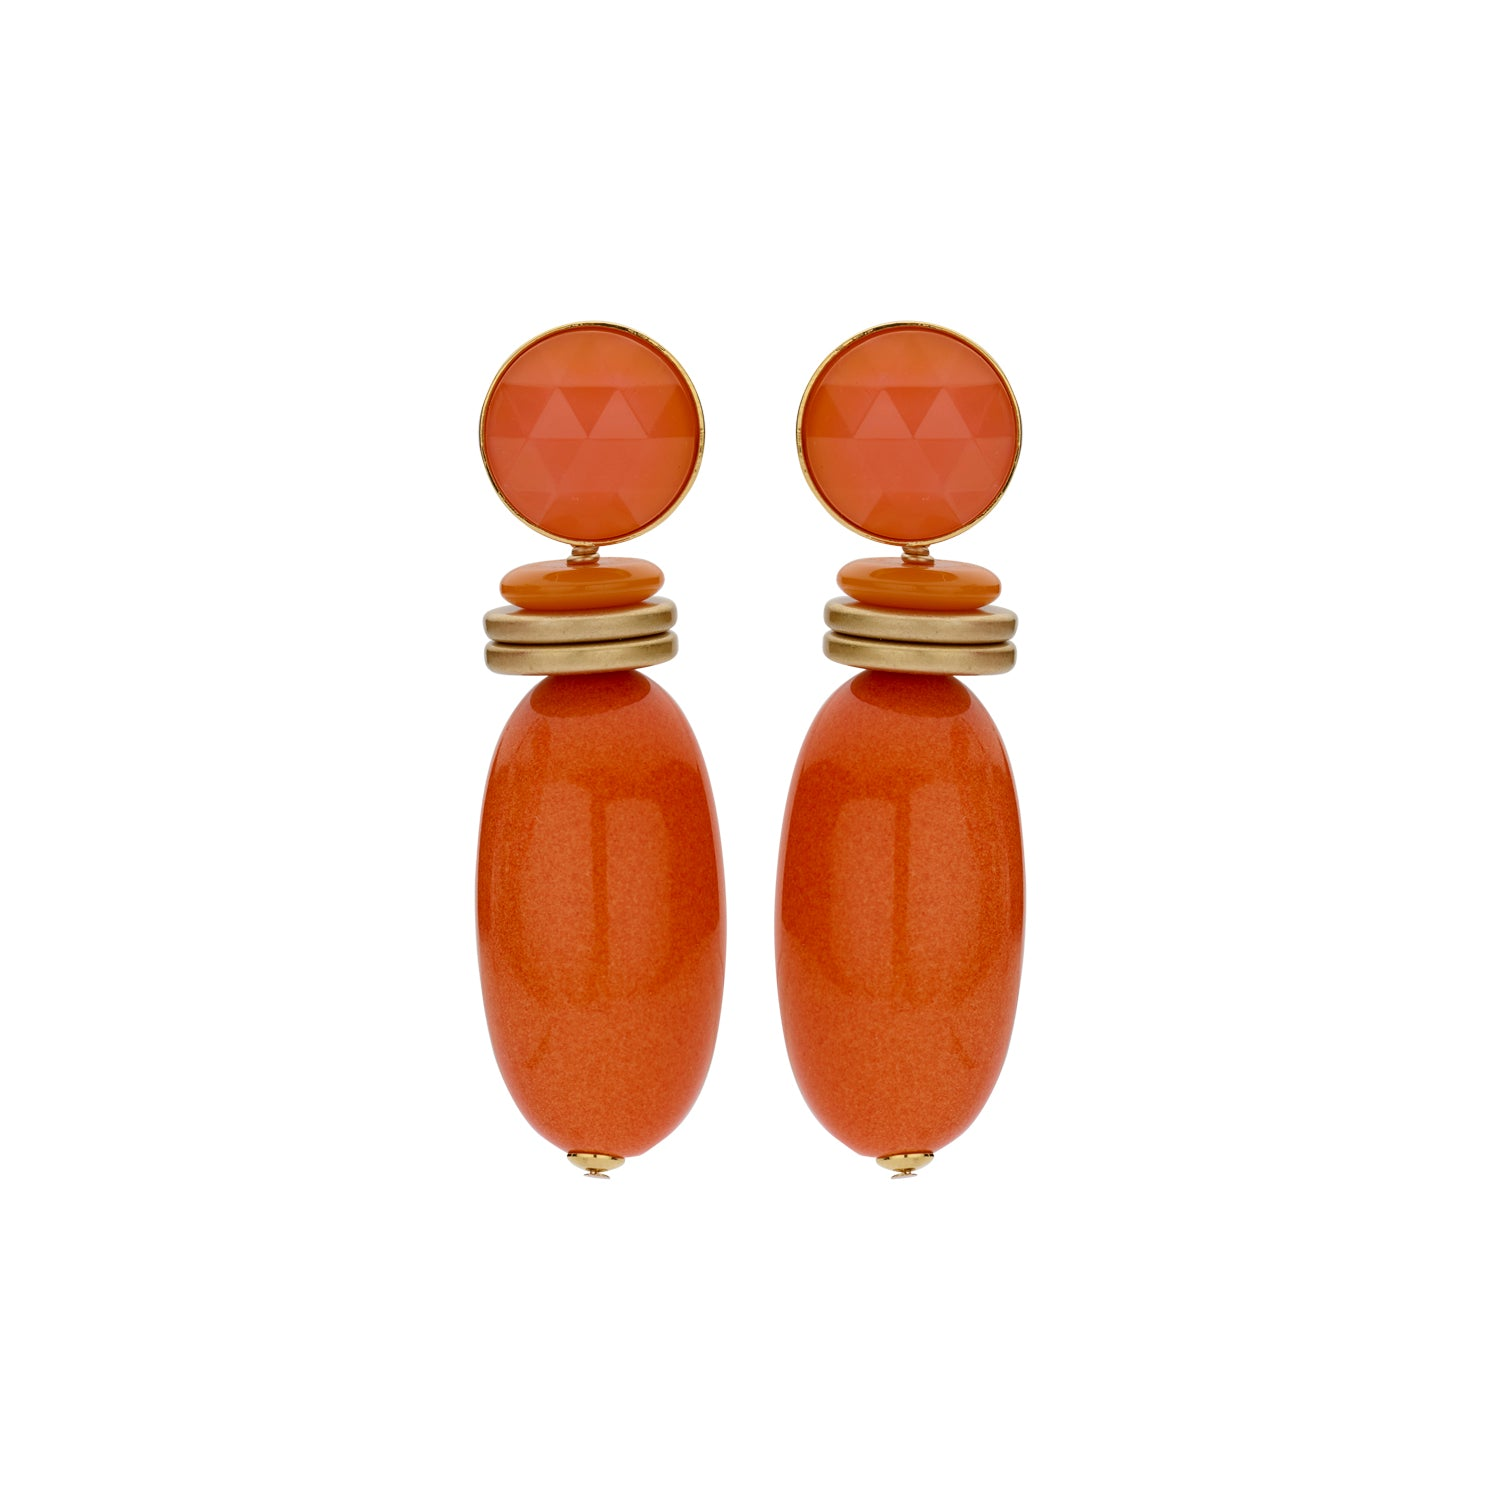 Nanou bold orange earrings - Souvenirs de Pomme